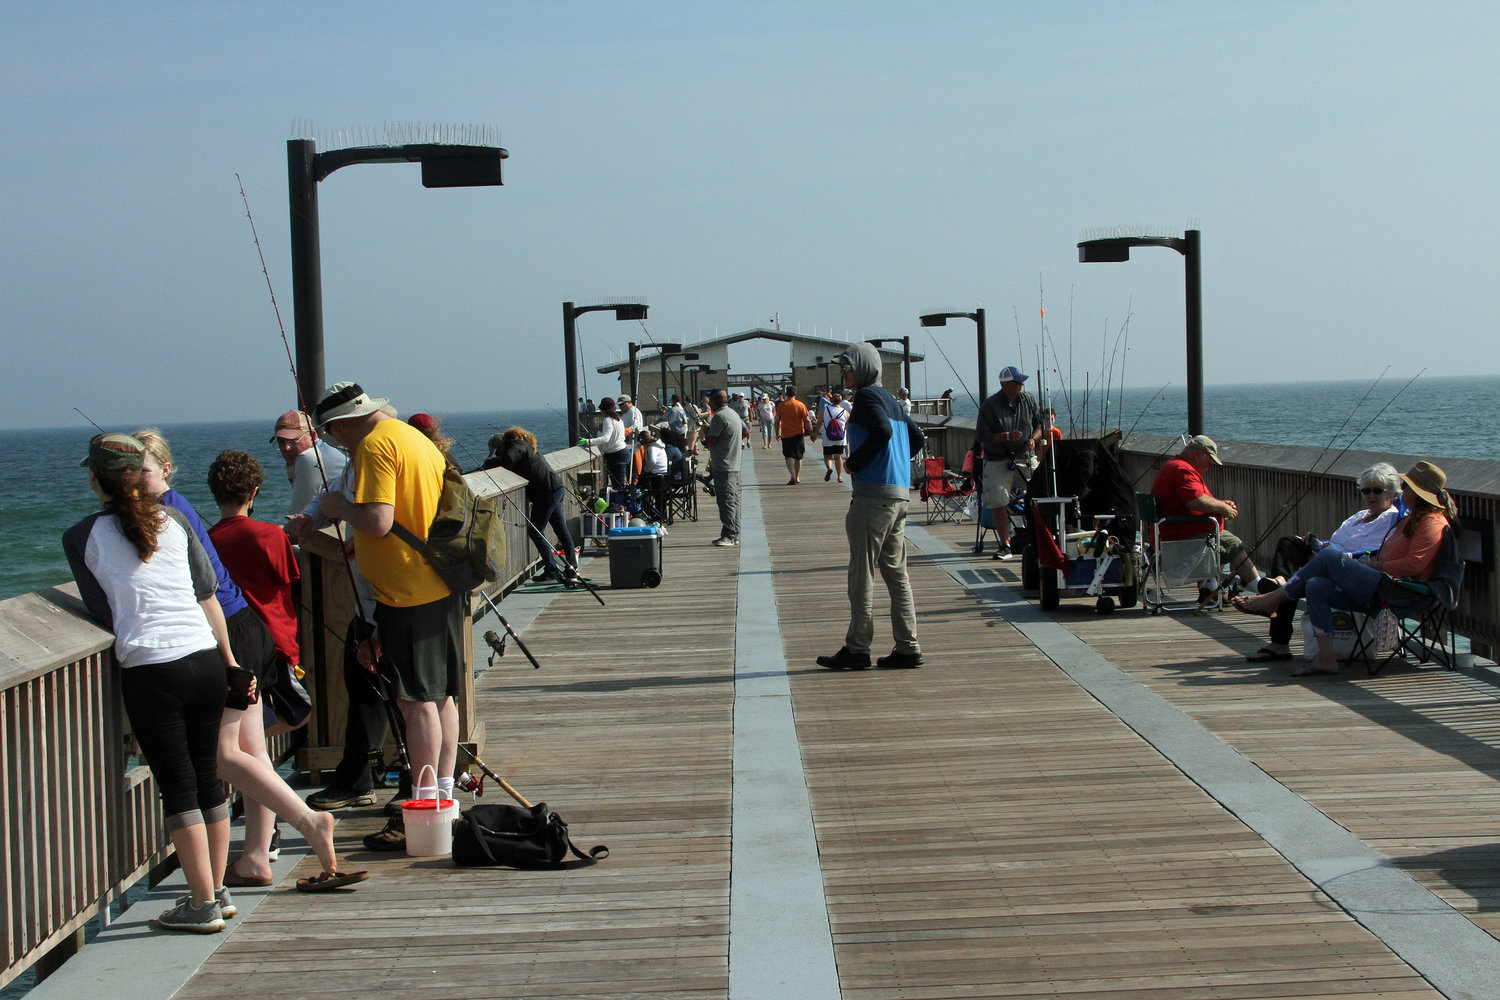 Anglers and sightseers have flocked to the pier since a portion was reopened